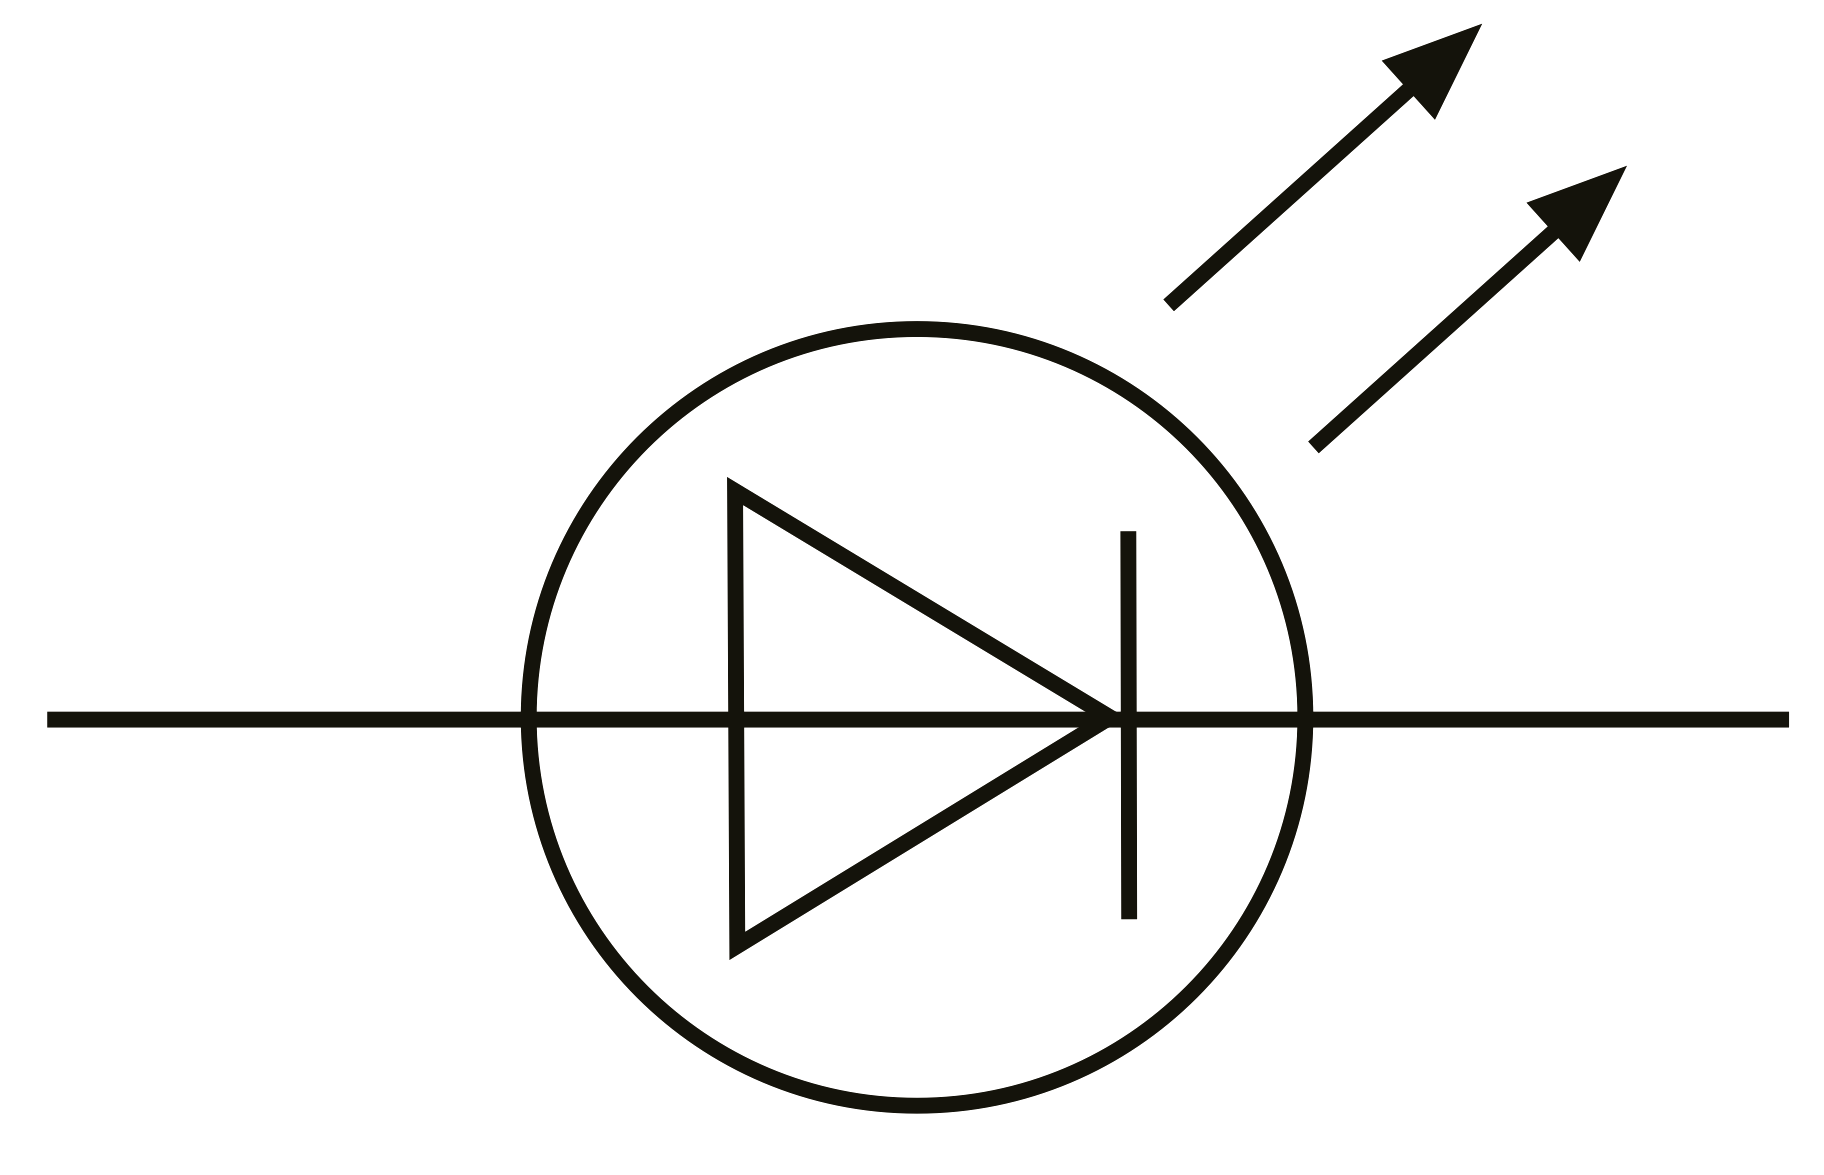 led light schematic symbol